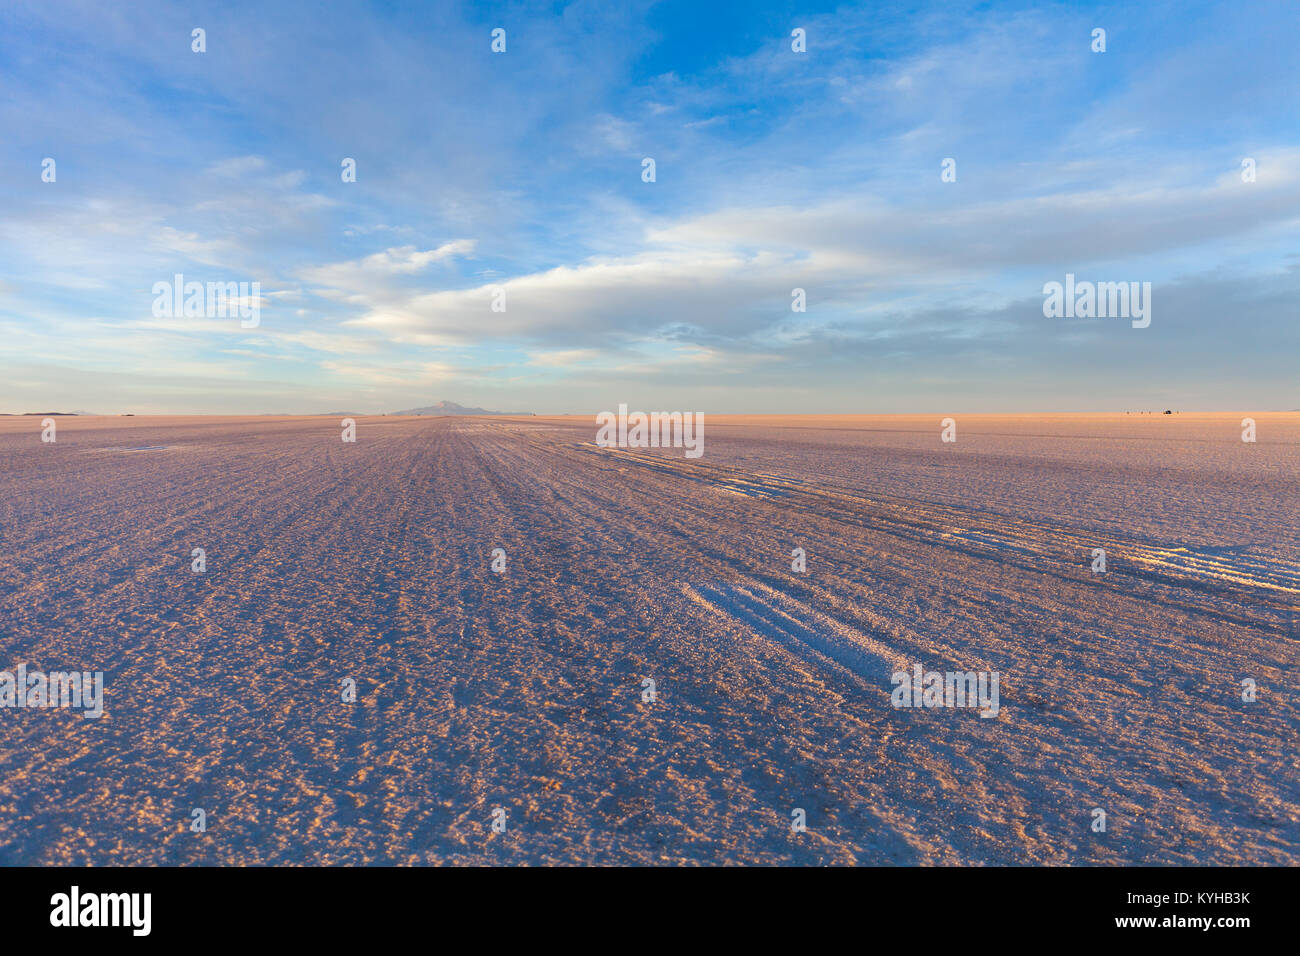 Salar de Uyuni salt marsh - Stock Image